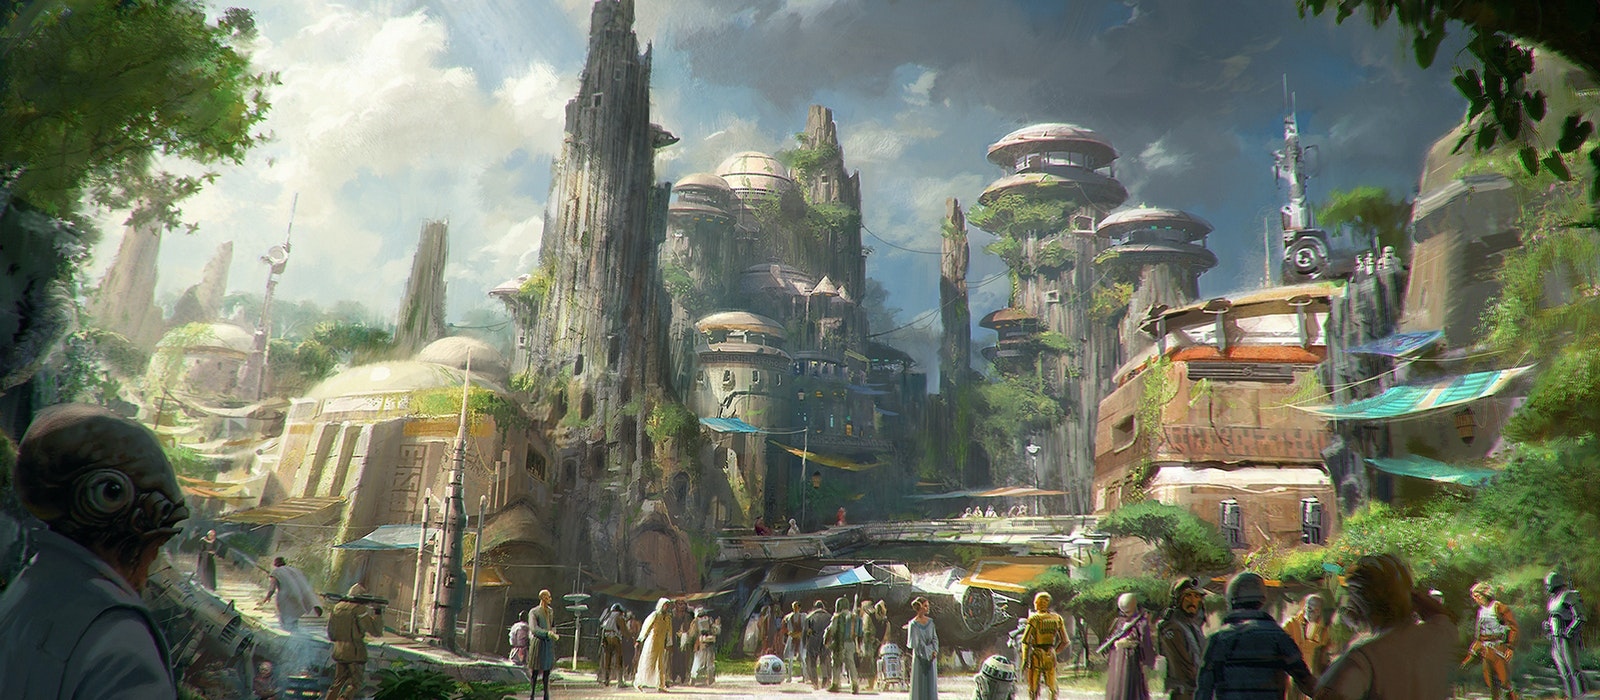 """The soon-to-open """"Star Wars"""" lands at Disneyland and Walt Disney World will immerse visitors in the fictional world of the planet Batuu."""